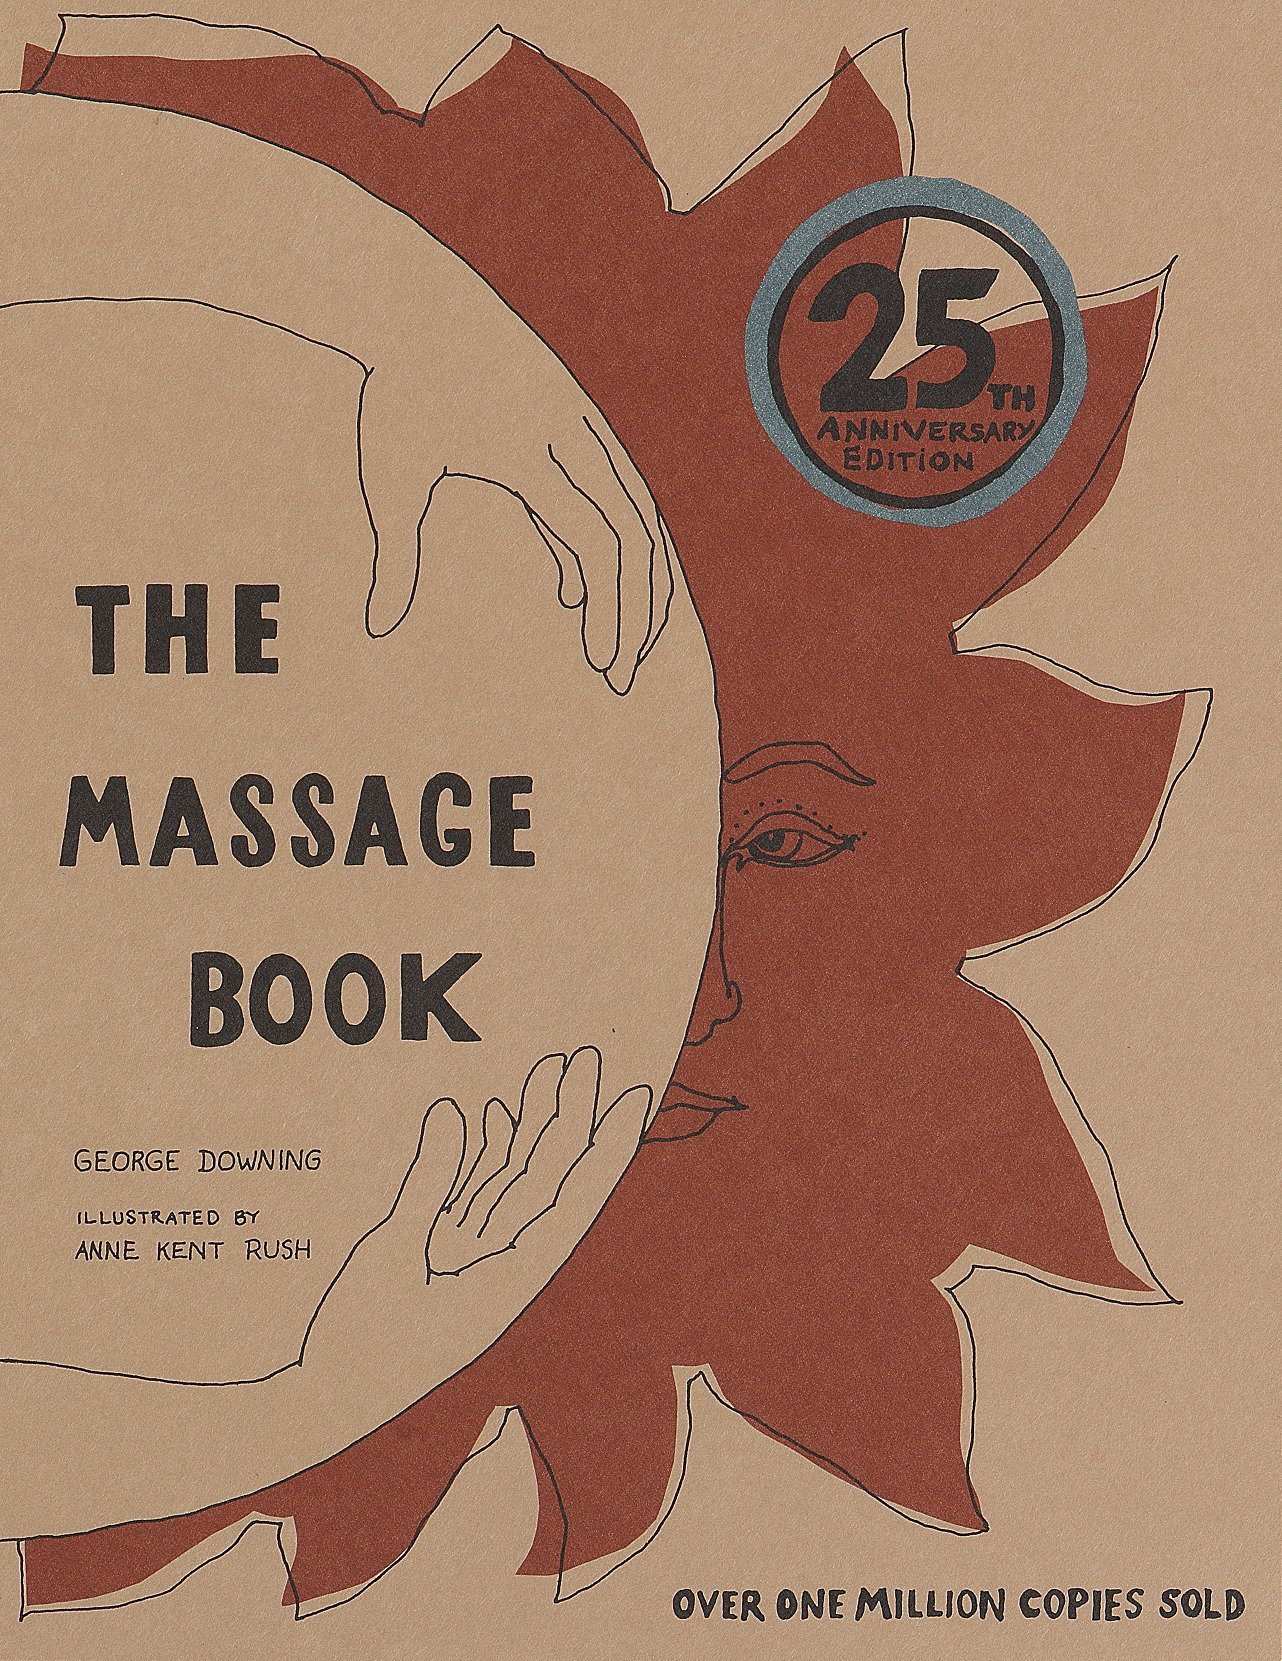 The Massage Book: 25th Anniversary Edition